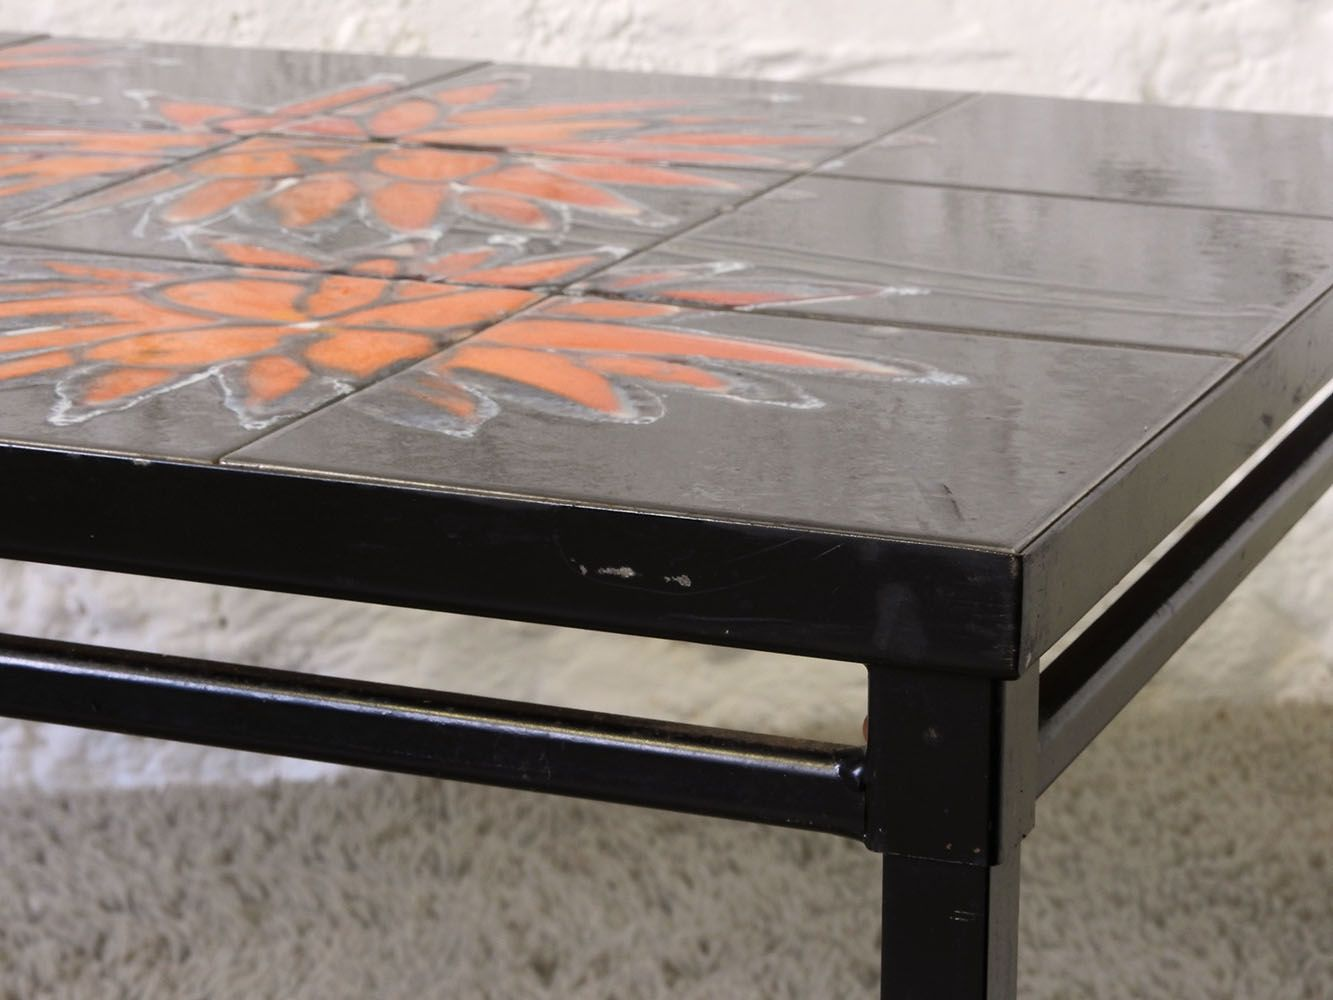 Mid century coffee table by adri 1960s for sale at pamono mid century coffee table by adri 1960s geotapseo Choice Image